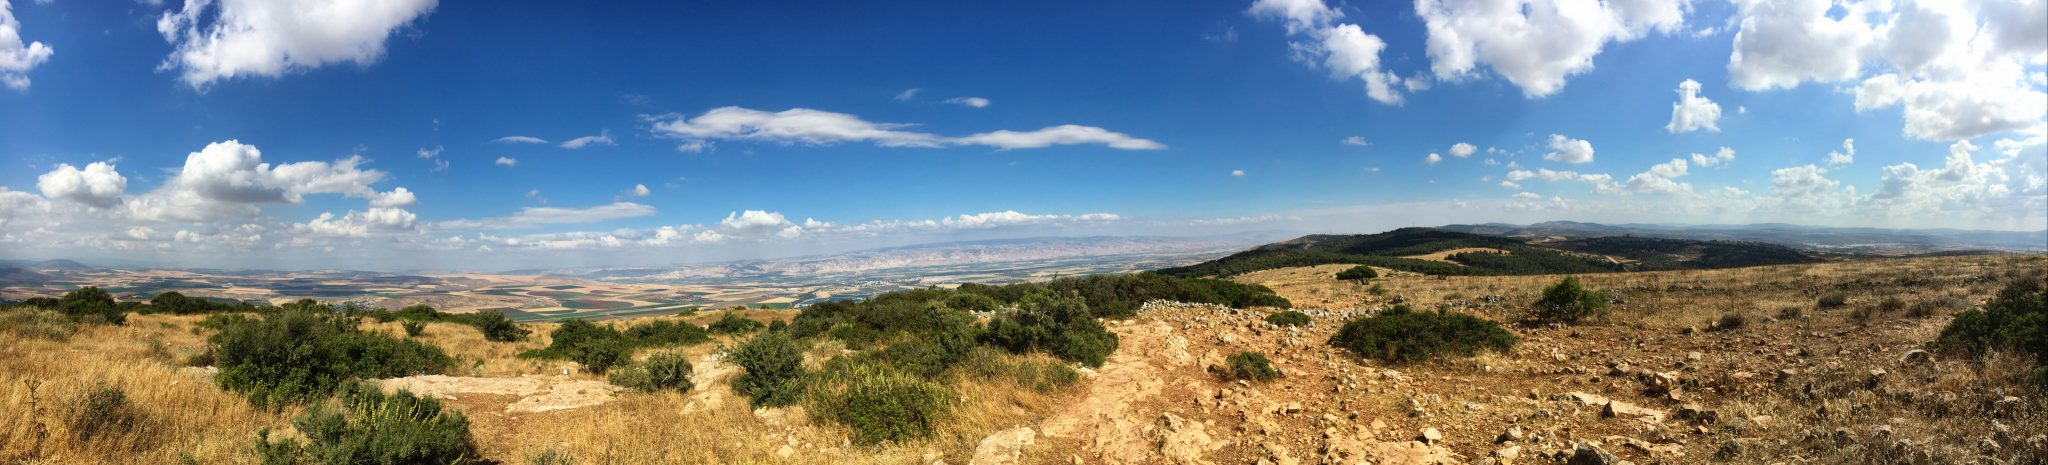 Gilboa Panorama View